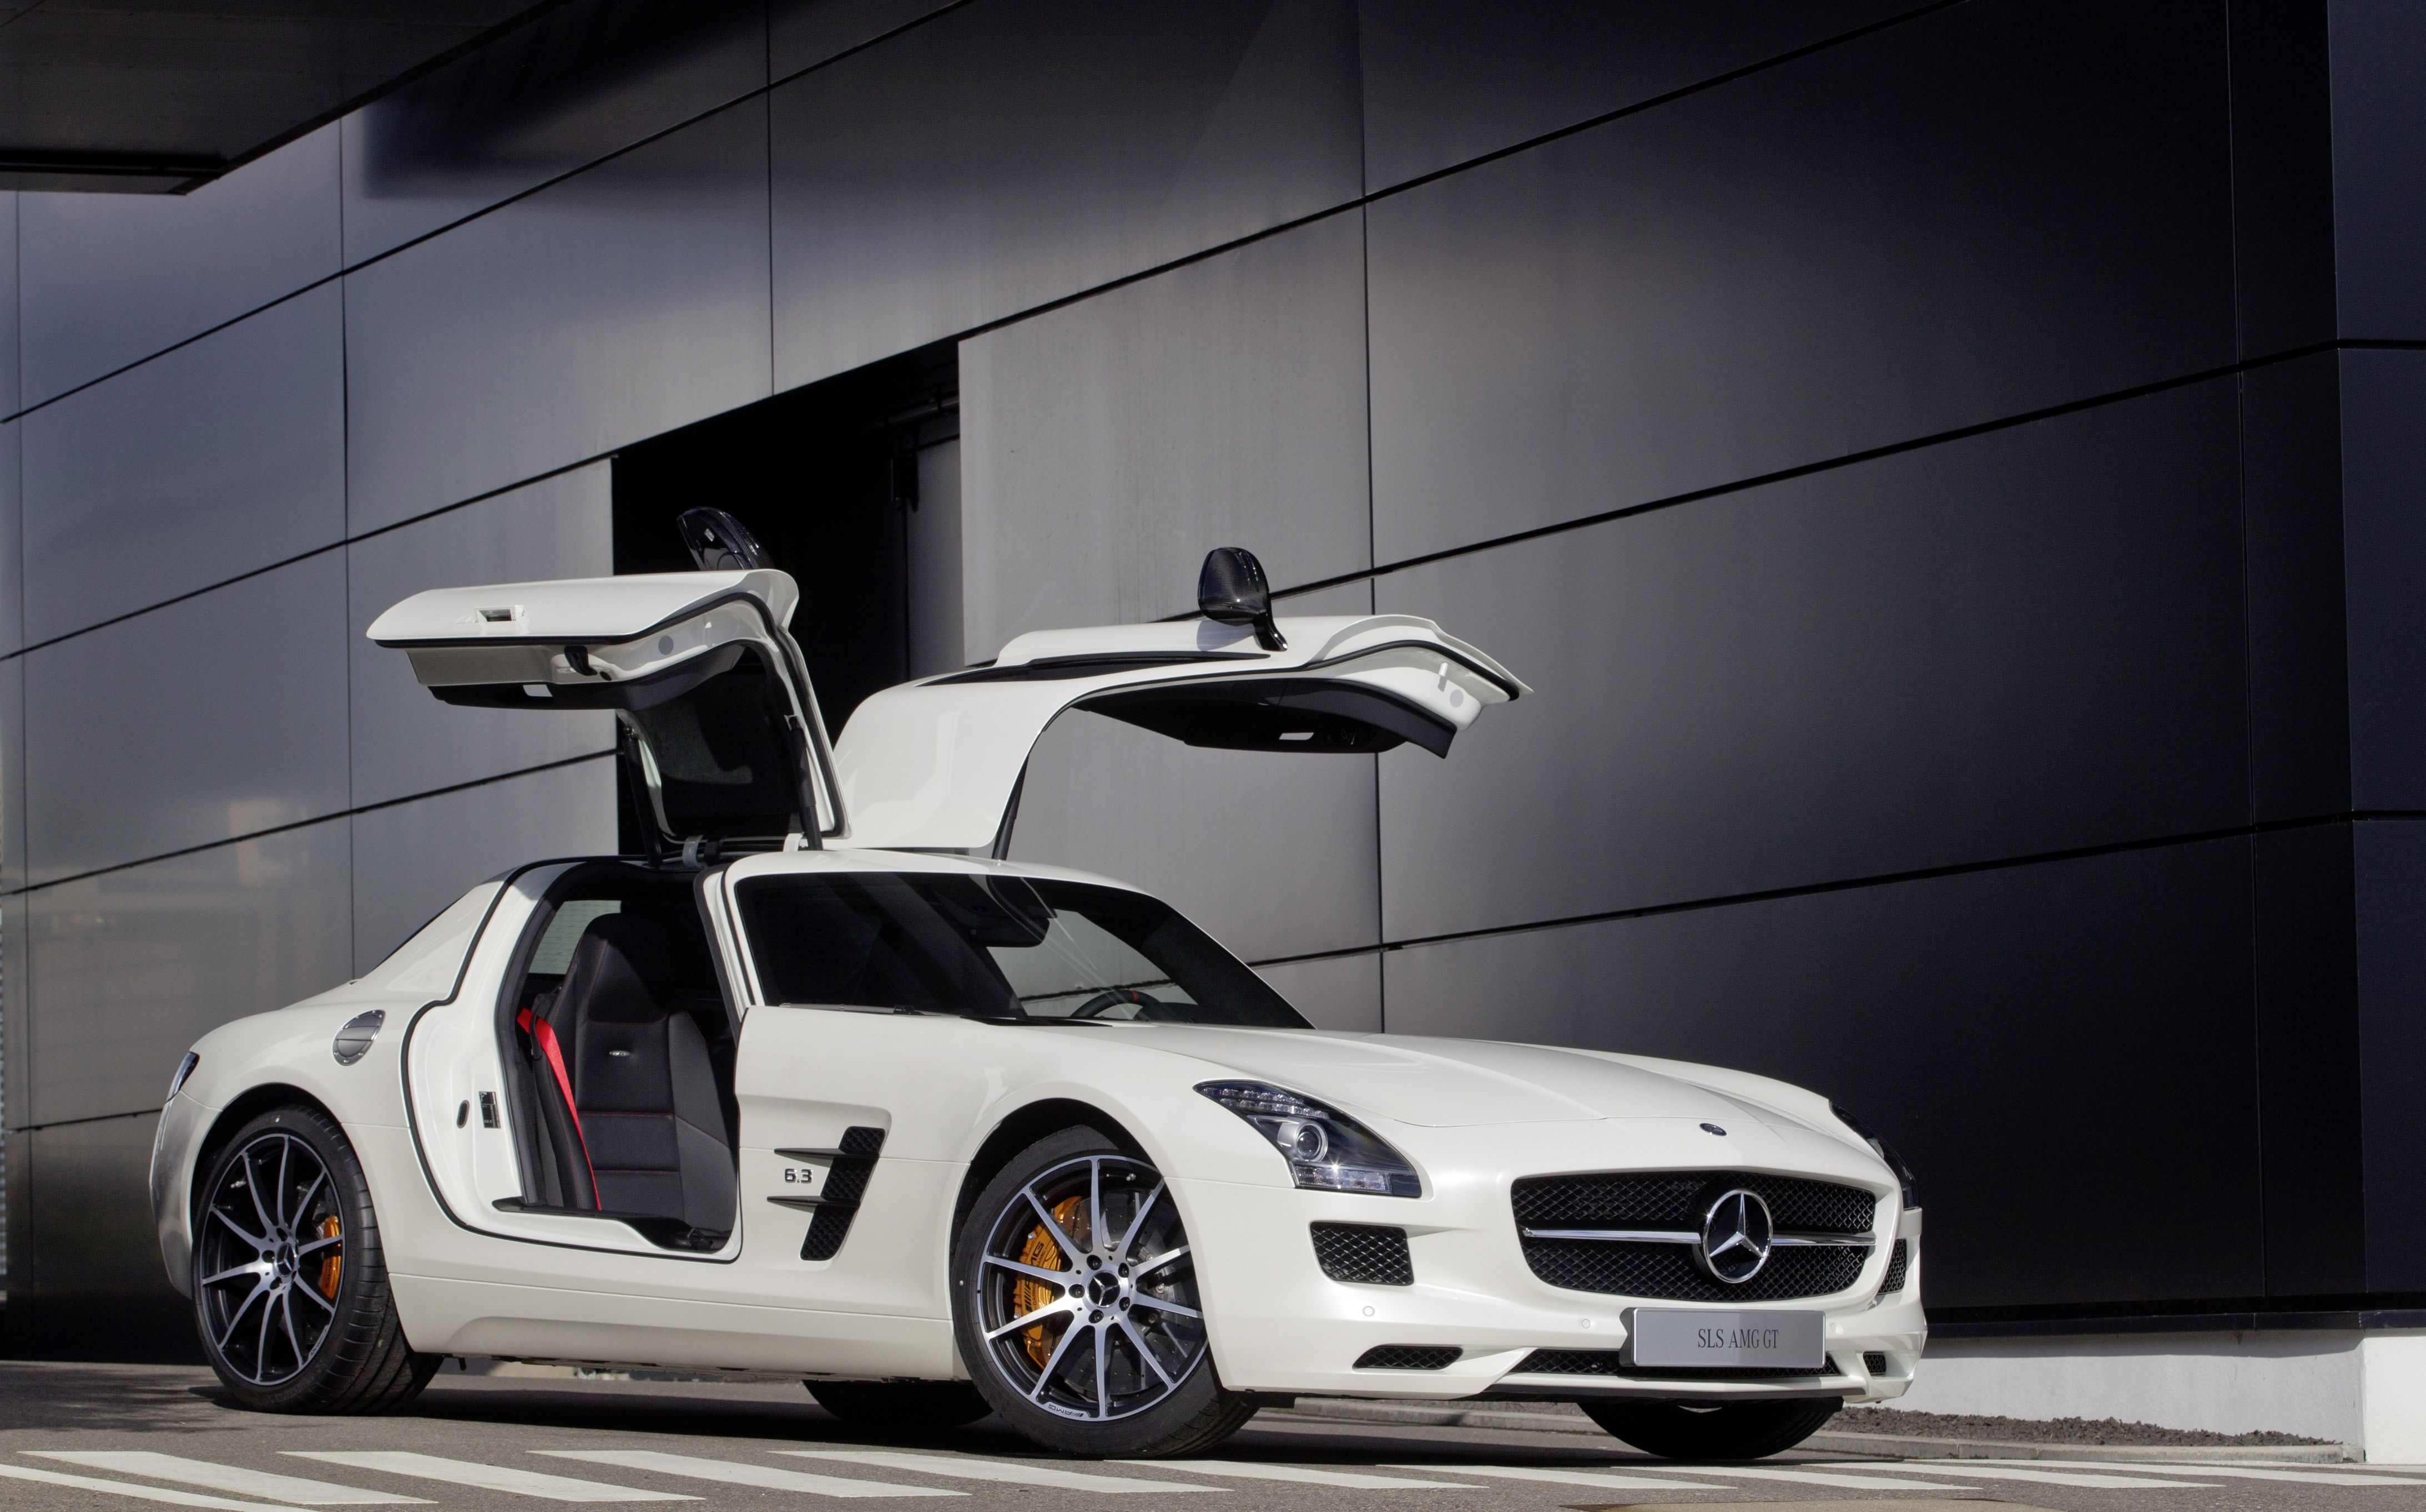 live benz cost much how mercedes a according does amg unleashed ignition to